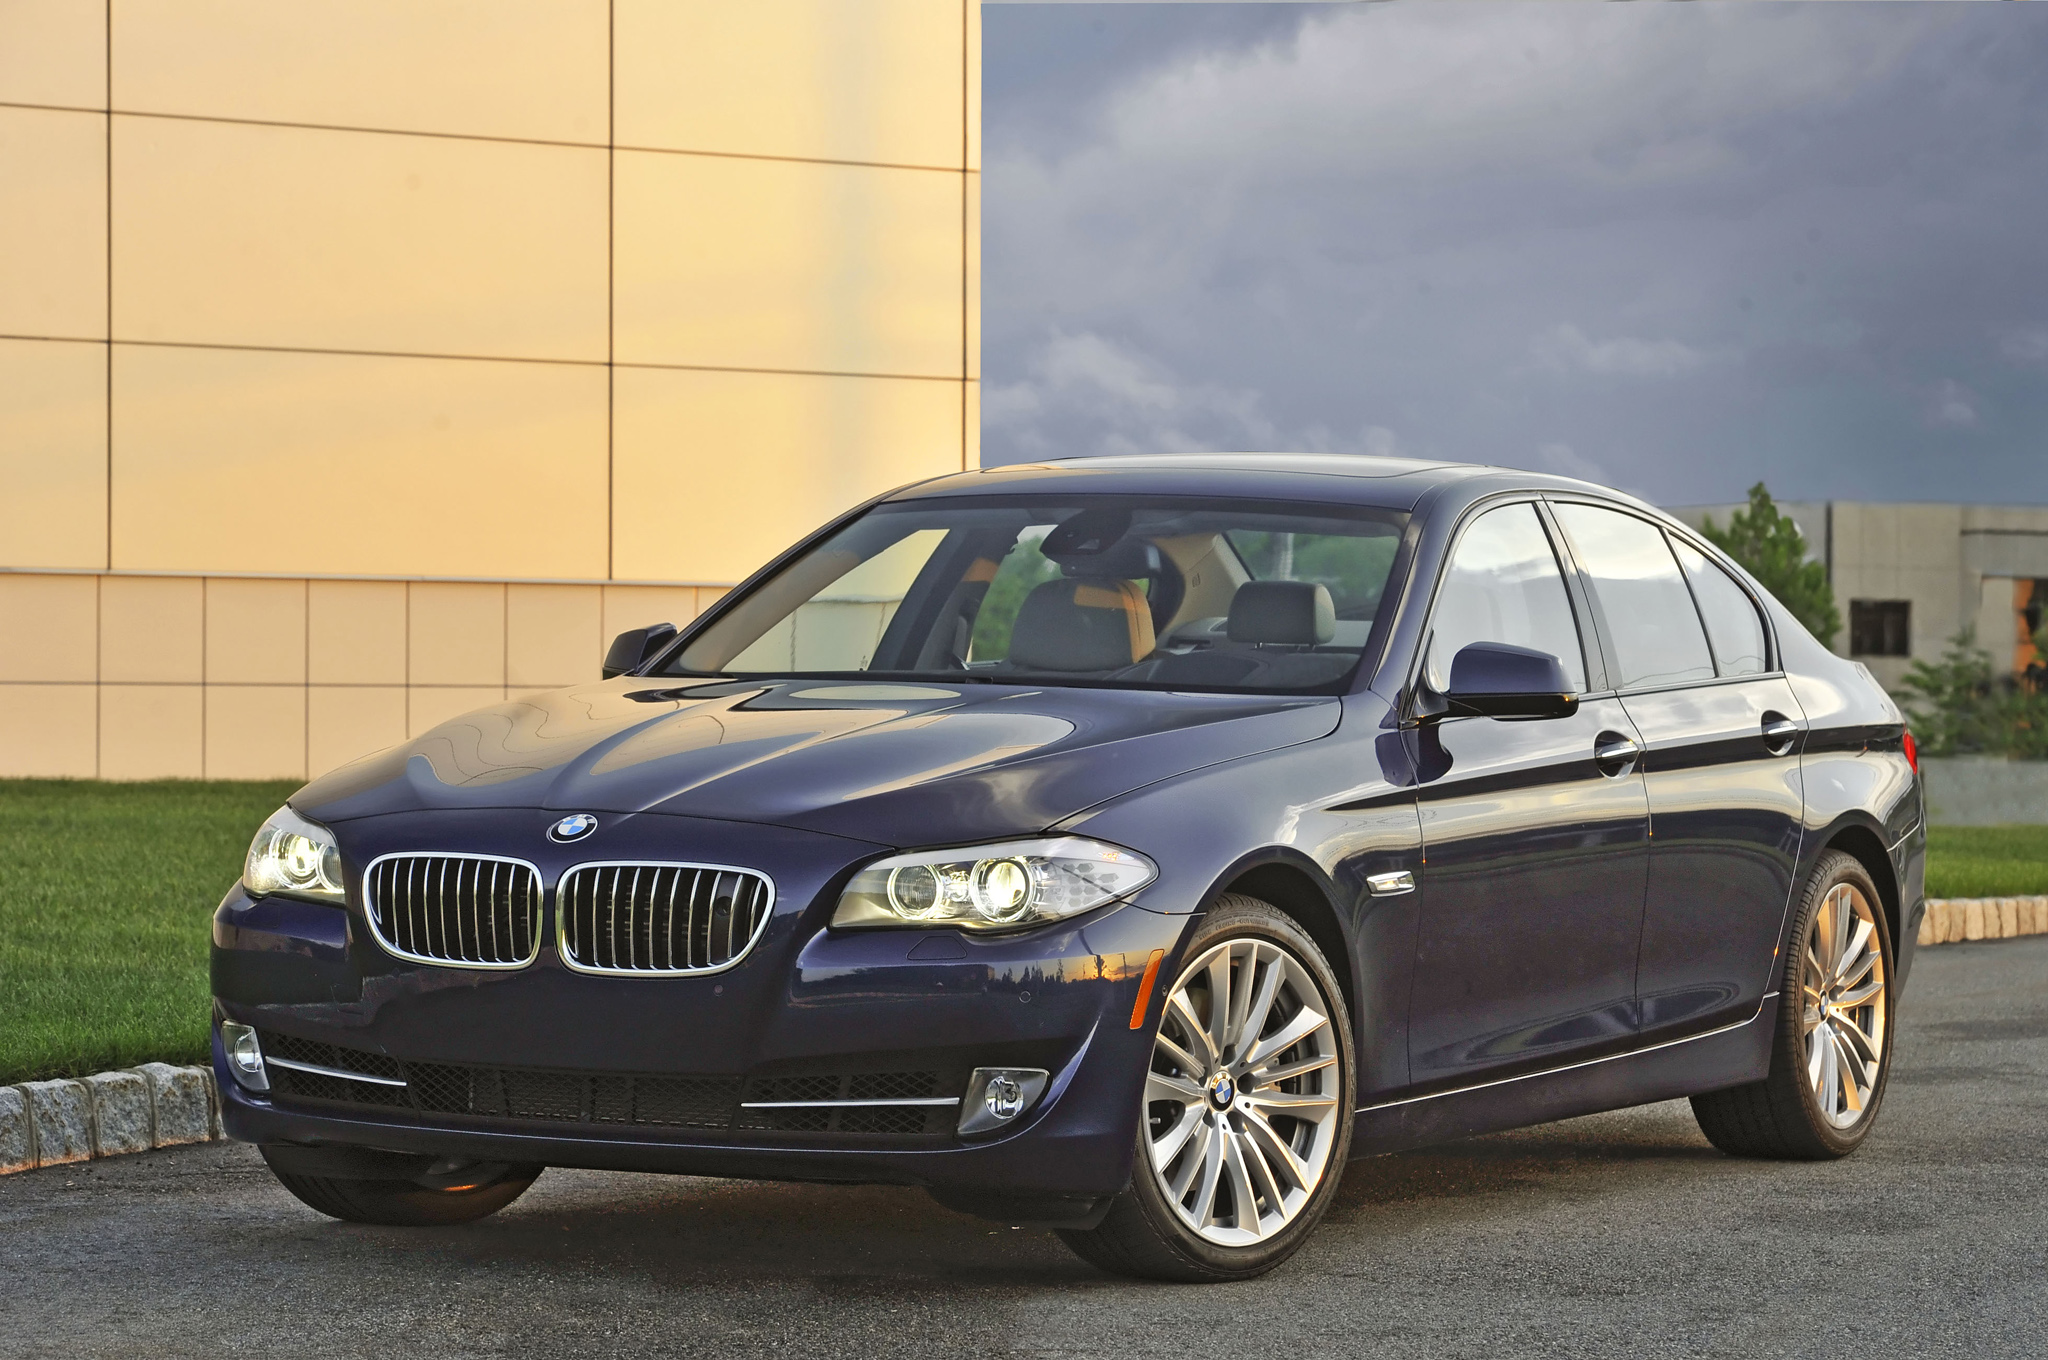 BMW 5 series 550i 2013 photo - 12